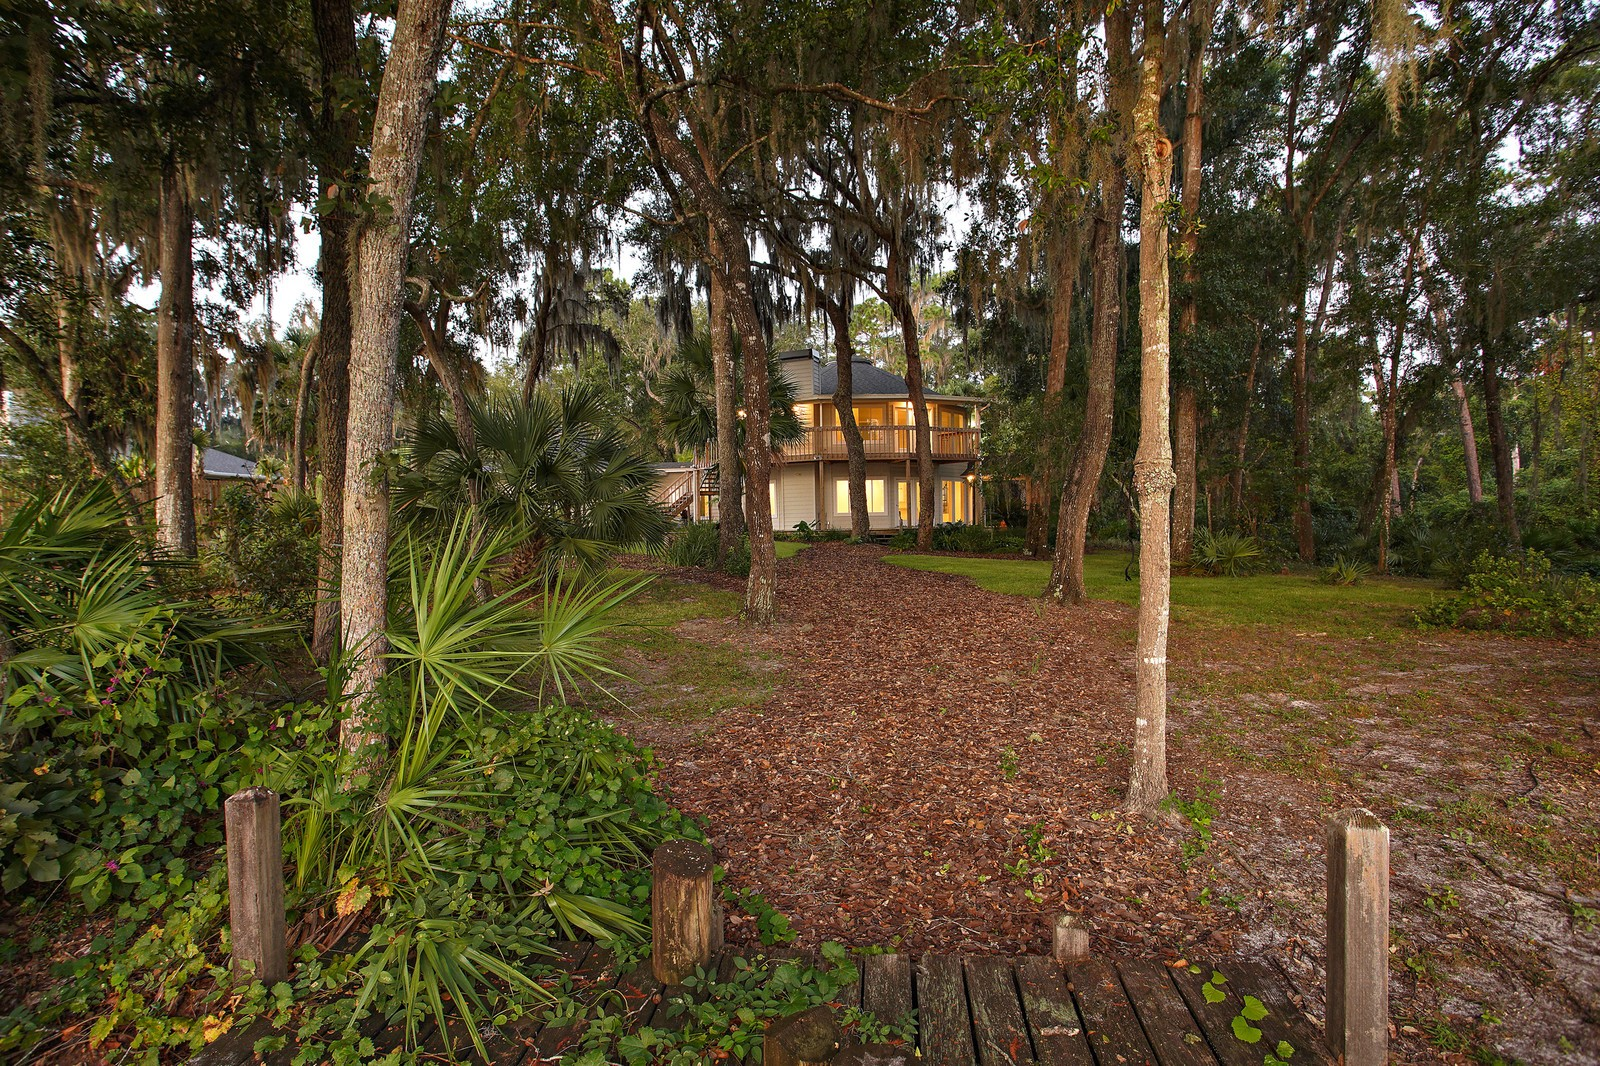 home for sale in altoona, fl